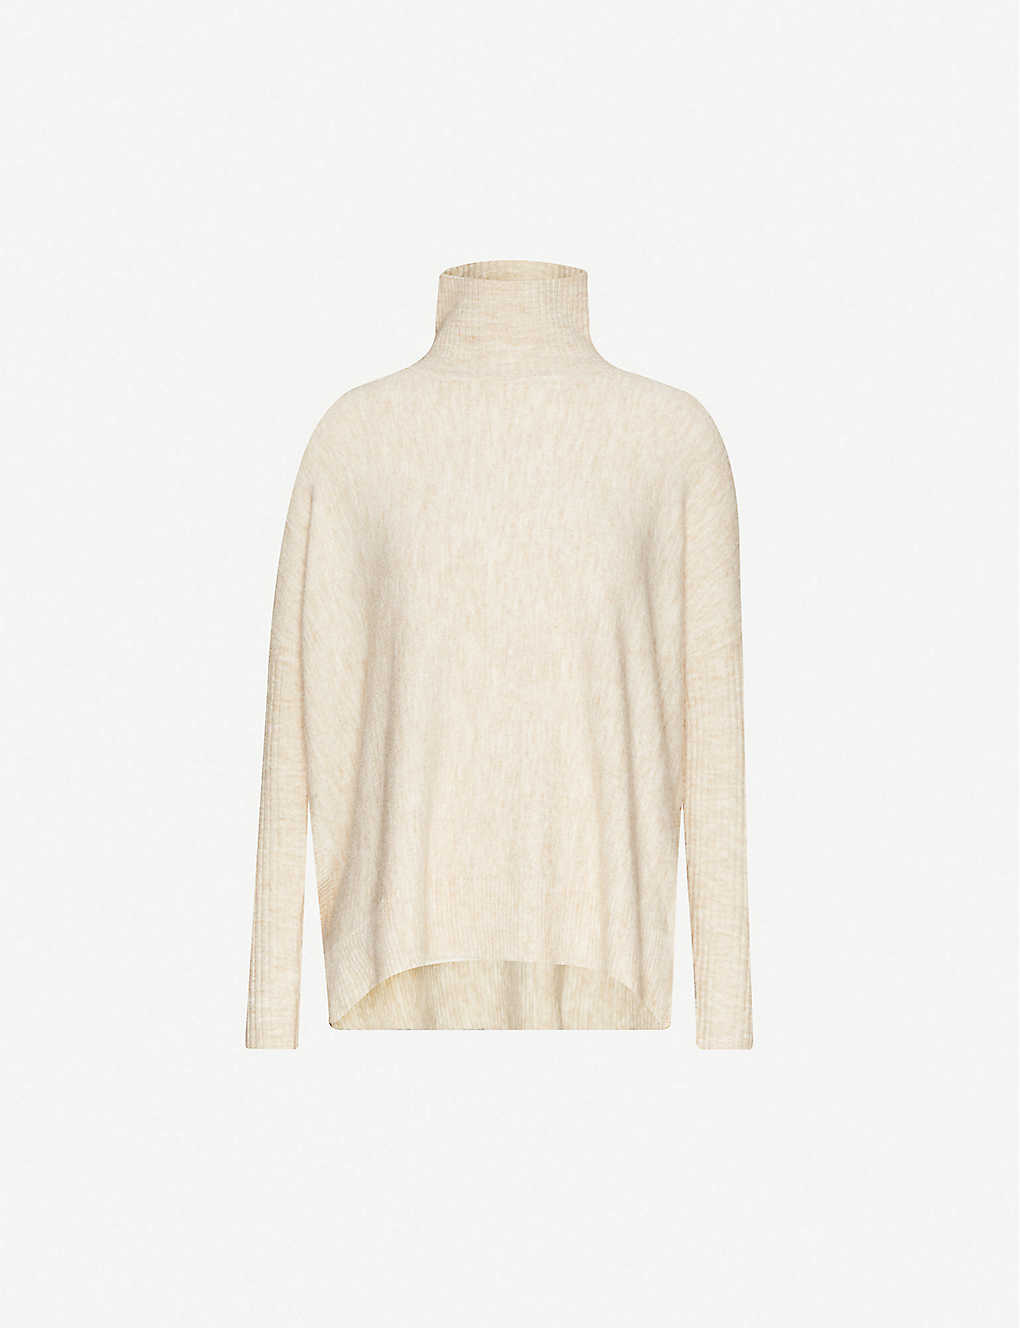 HAPPY X NATURE: Turtleneck stretch-knit jumper